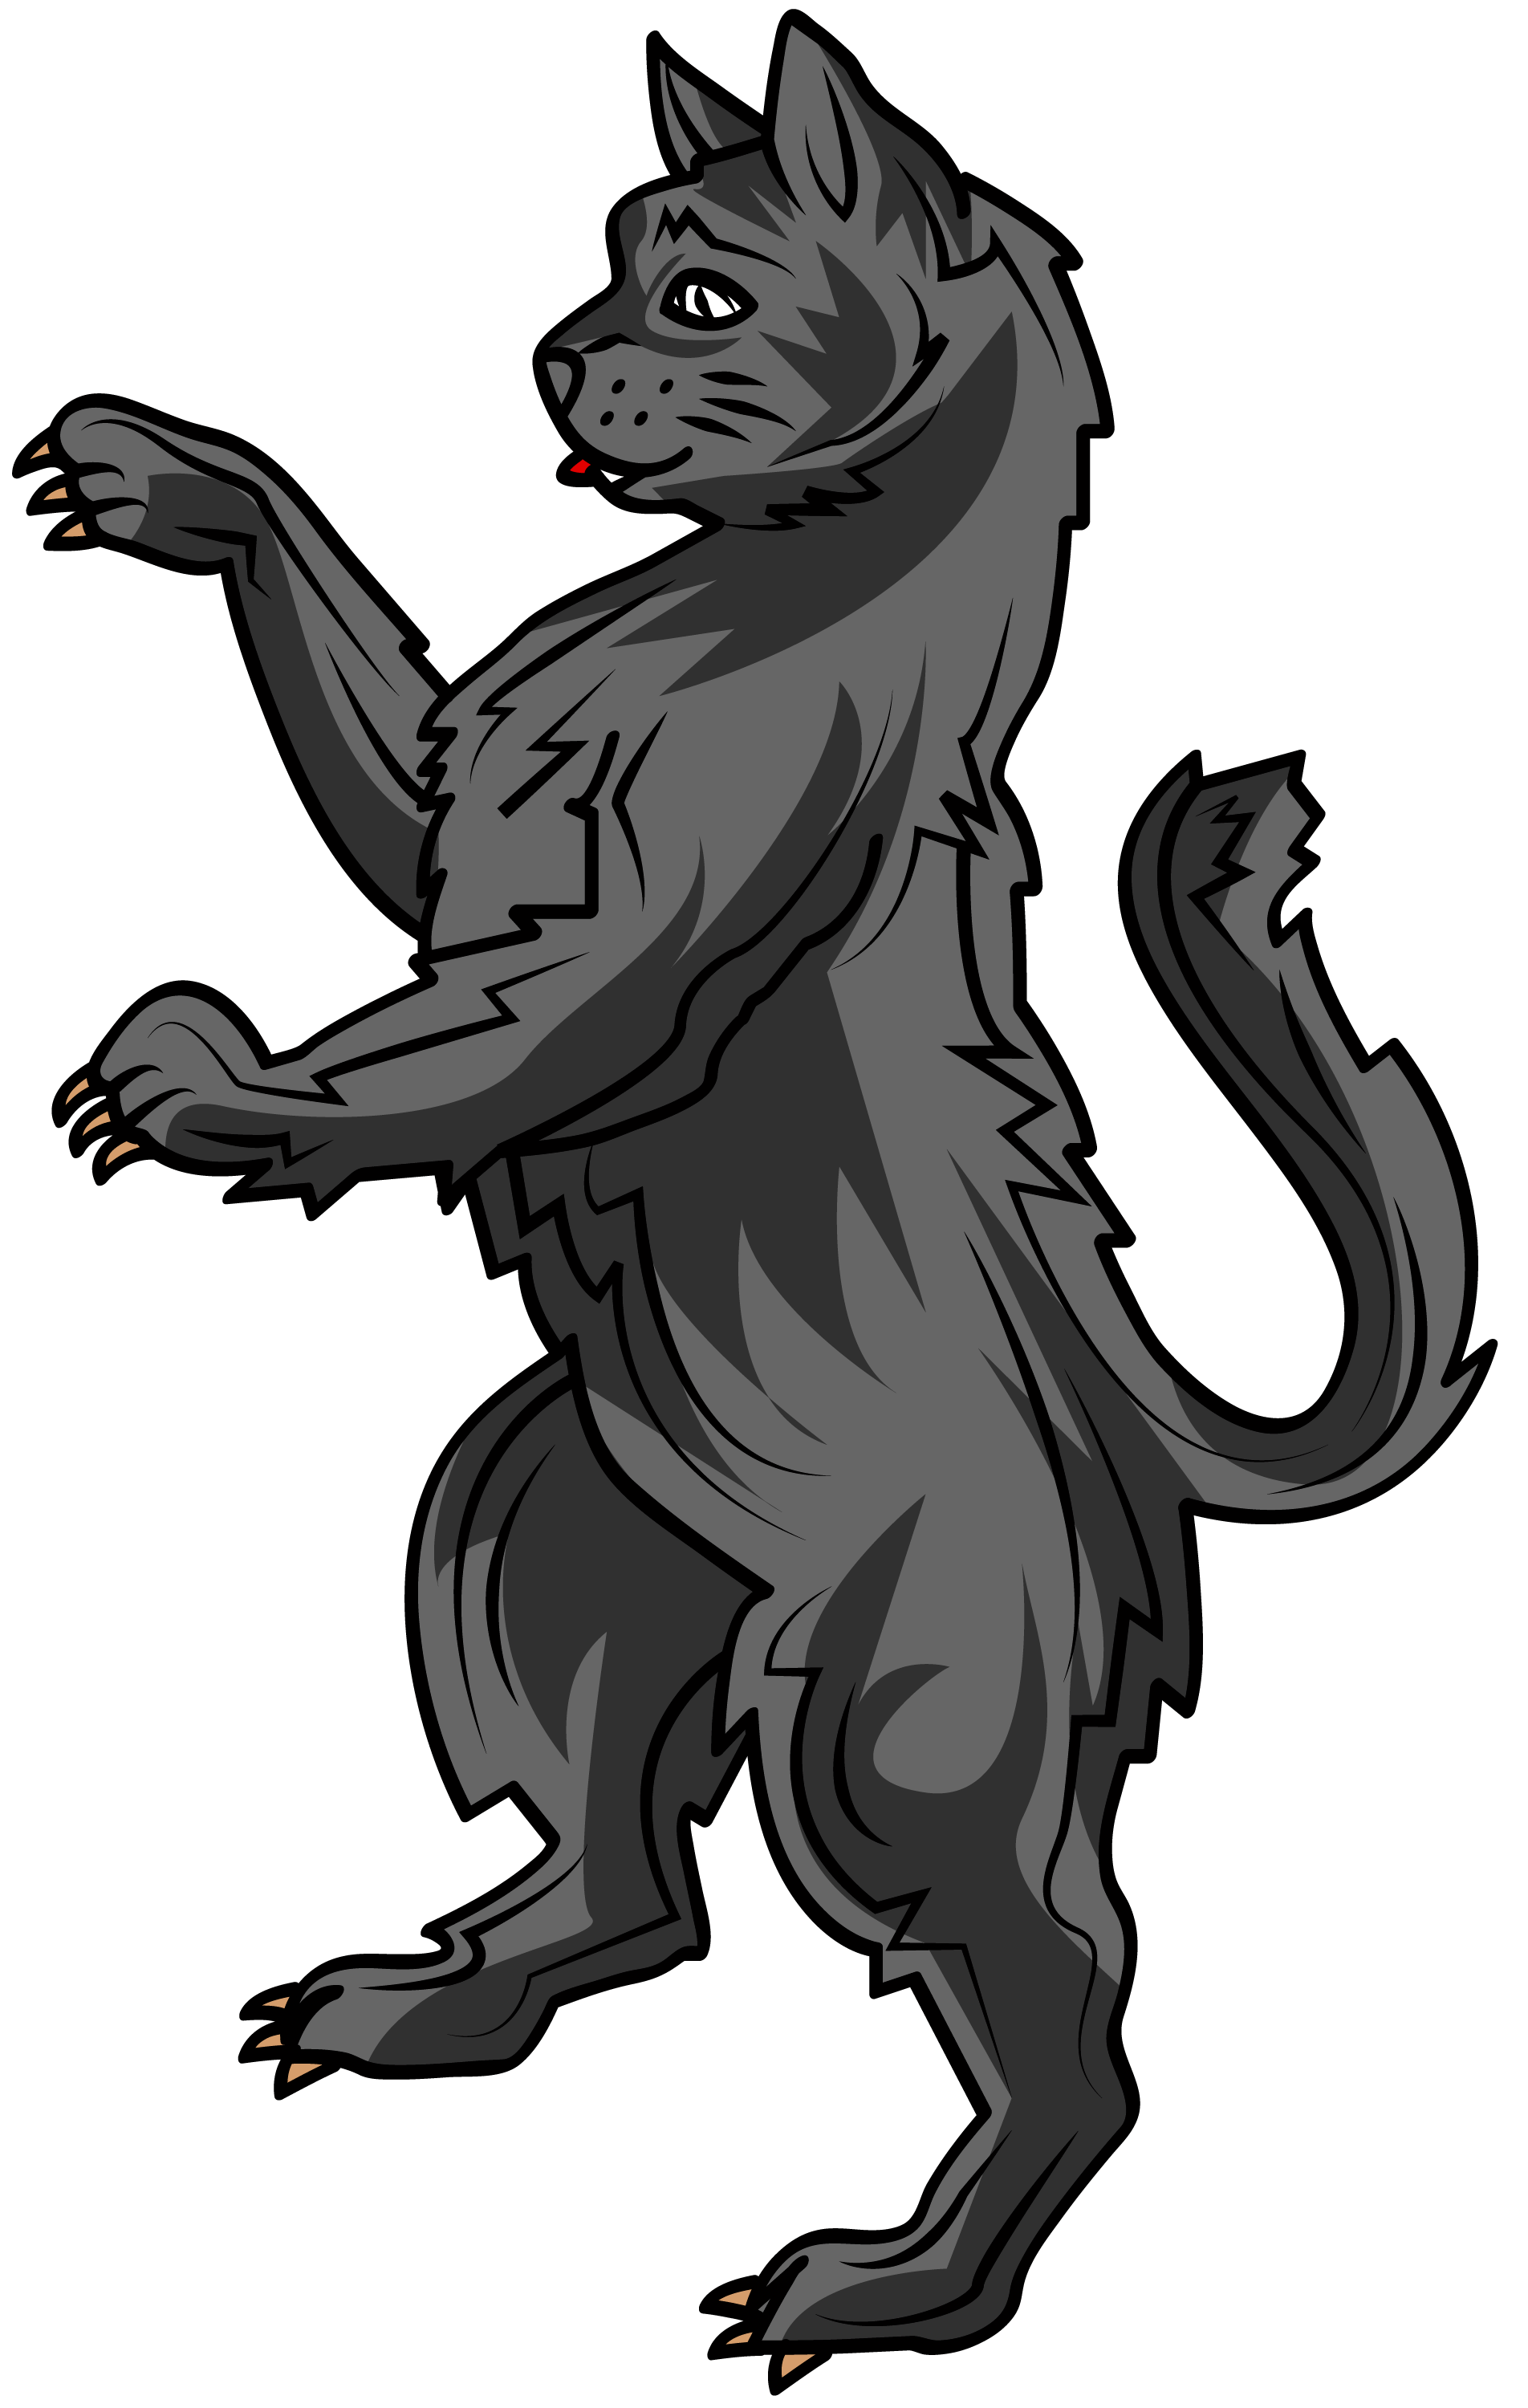 The cat in heraldry. Words clipart courage